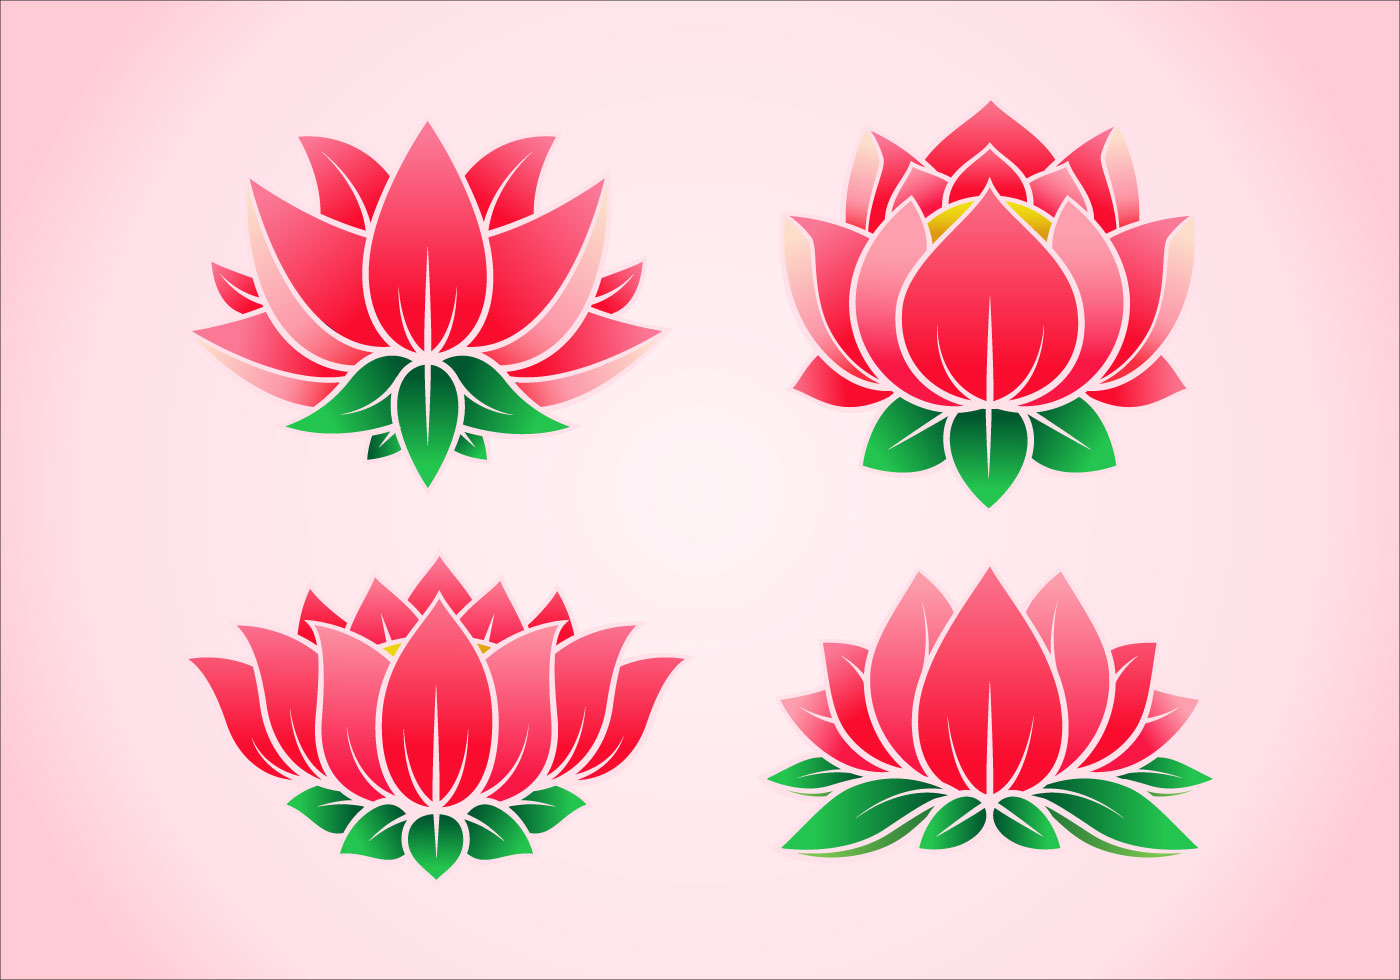 Wesak Wallpaper Hd Lotus Flower Vector 9010 Free Downloads